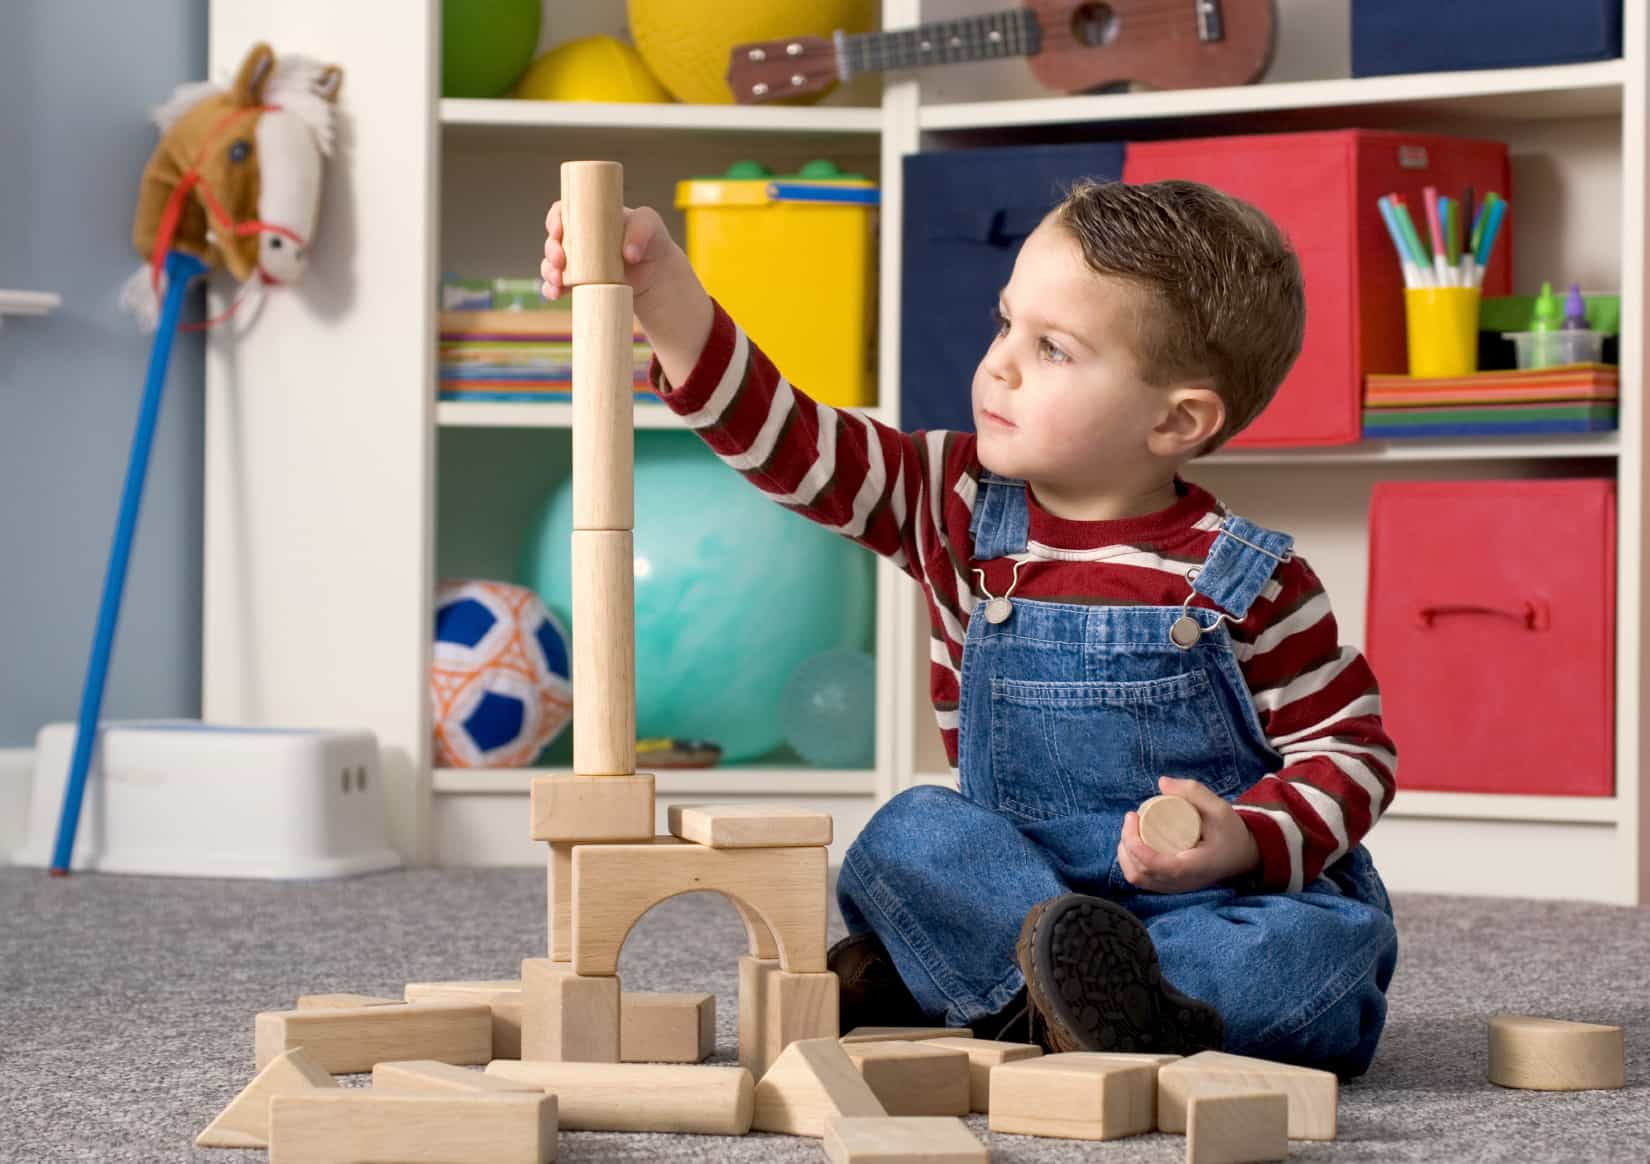 Building Toys For 3 Year Olds : Your child s cognitive development catering for their needs